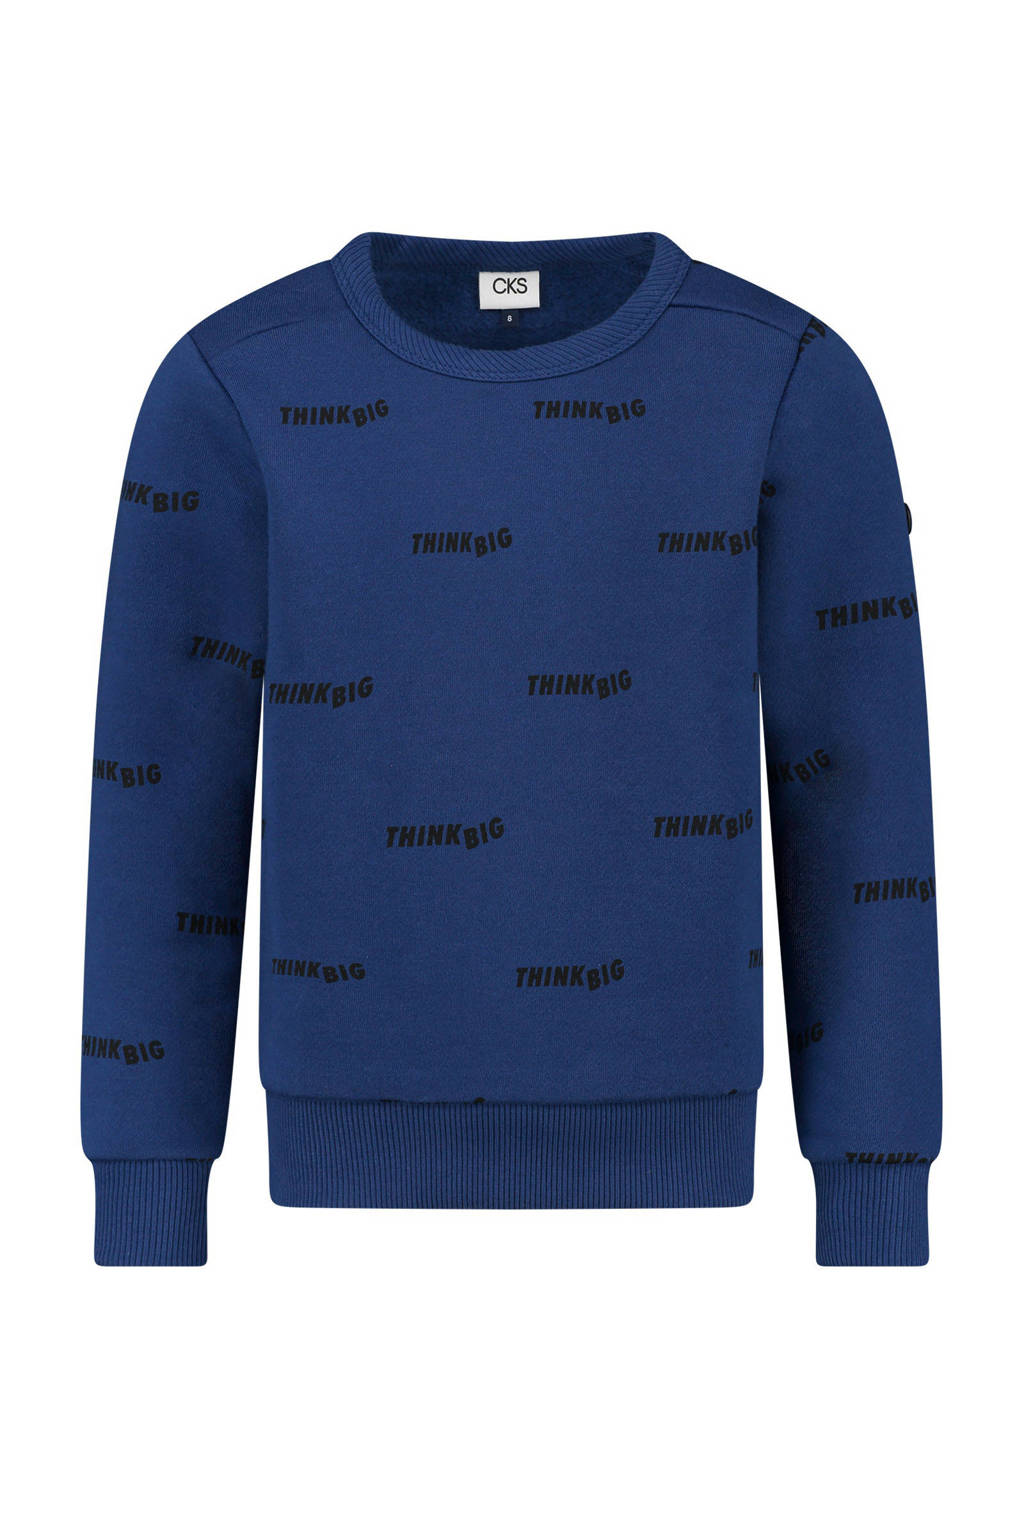 CKS KIDS sweater Brammon met all over print blauw, Blauw